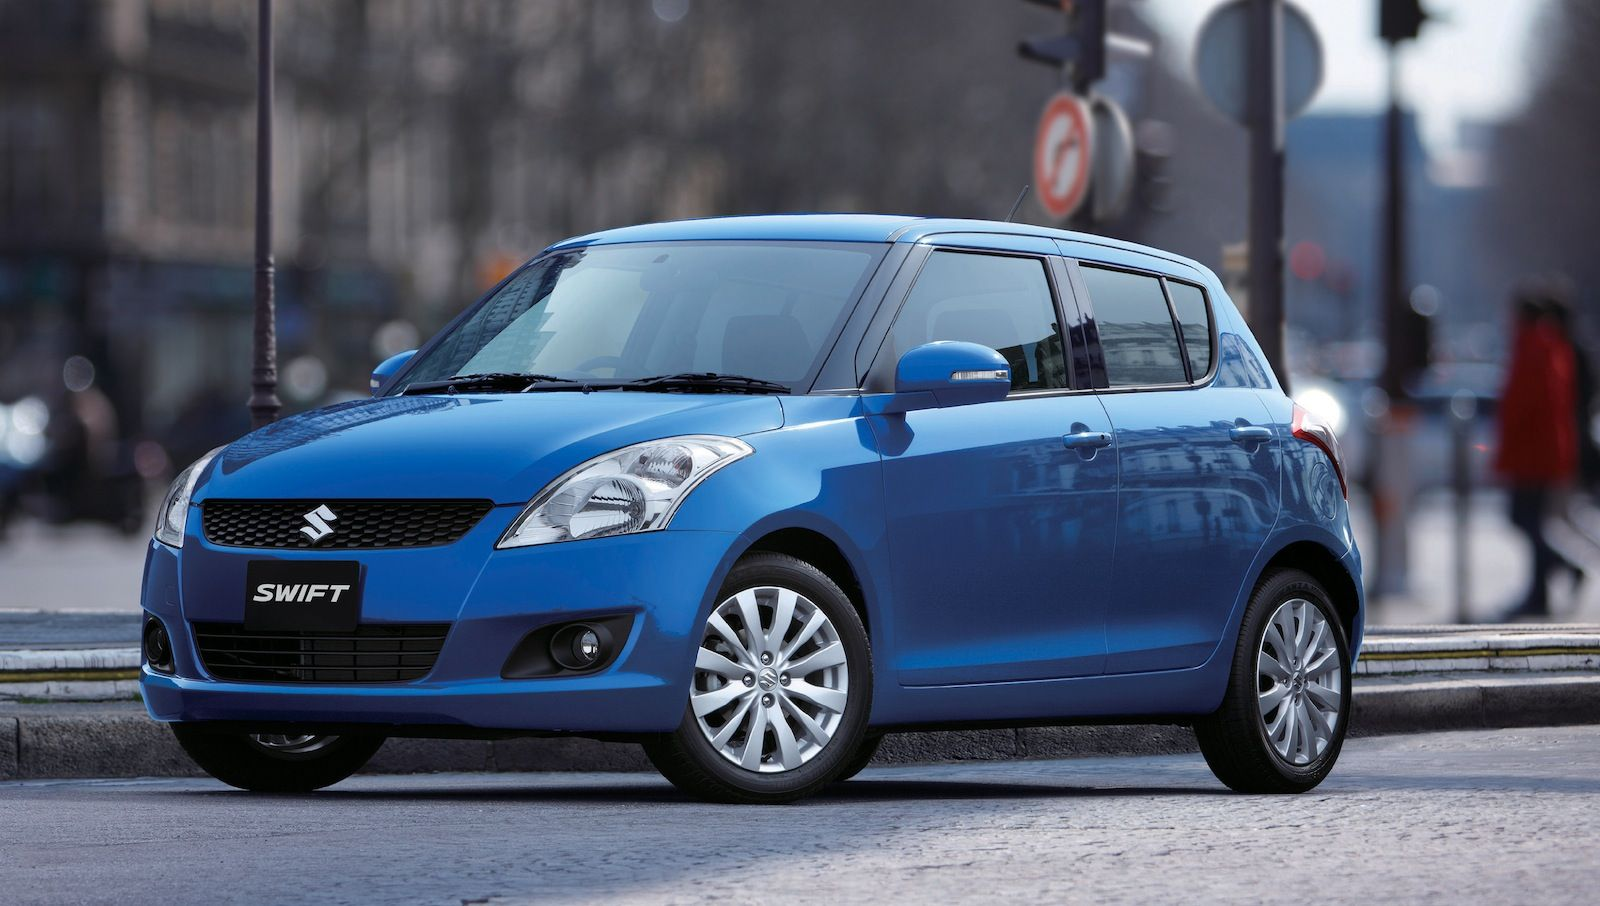 Suzuki swift sport 2013 pictures to pin on pinterest - Suzuki Swift Blue